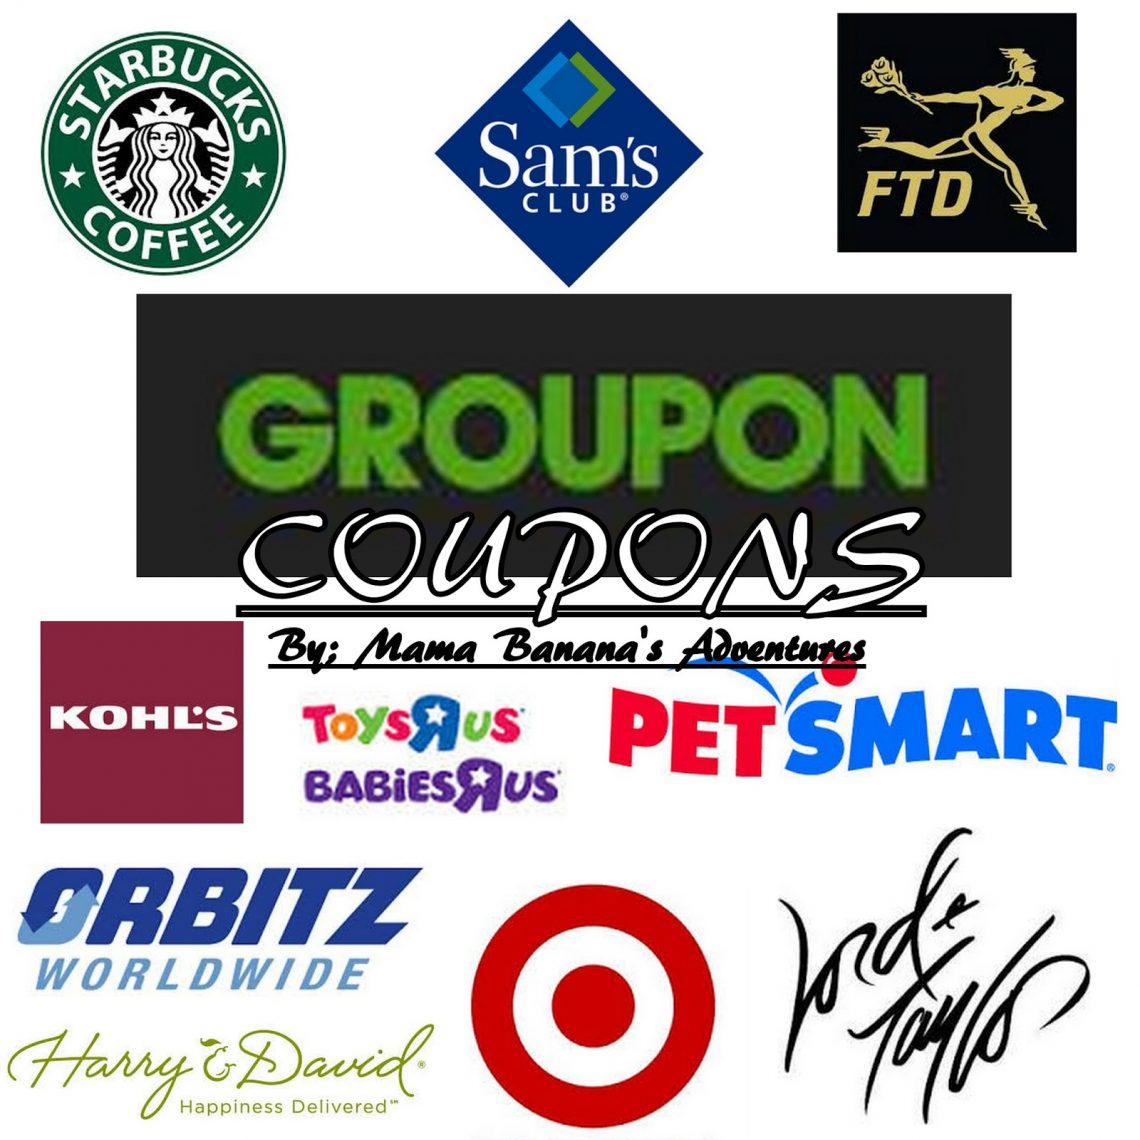 Walmart Sale Items This Week - You can get discounts at target walmart amazon staples and office depot by checking here at groupon coupons to find even further